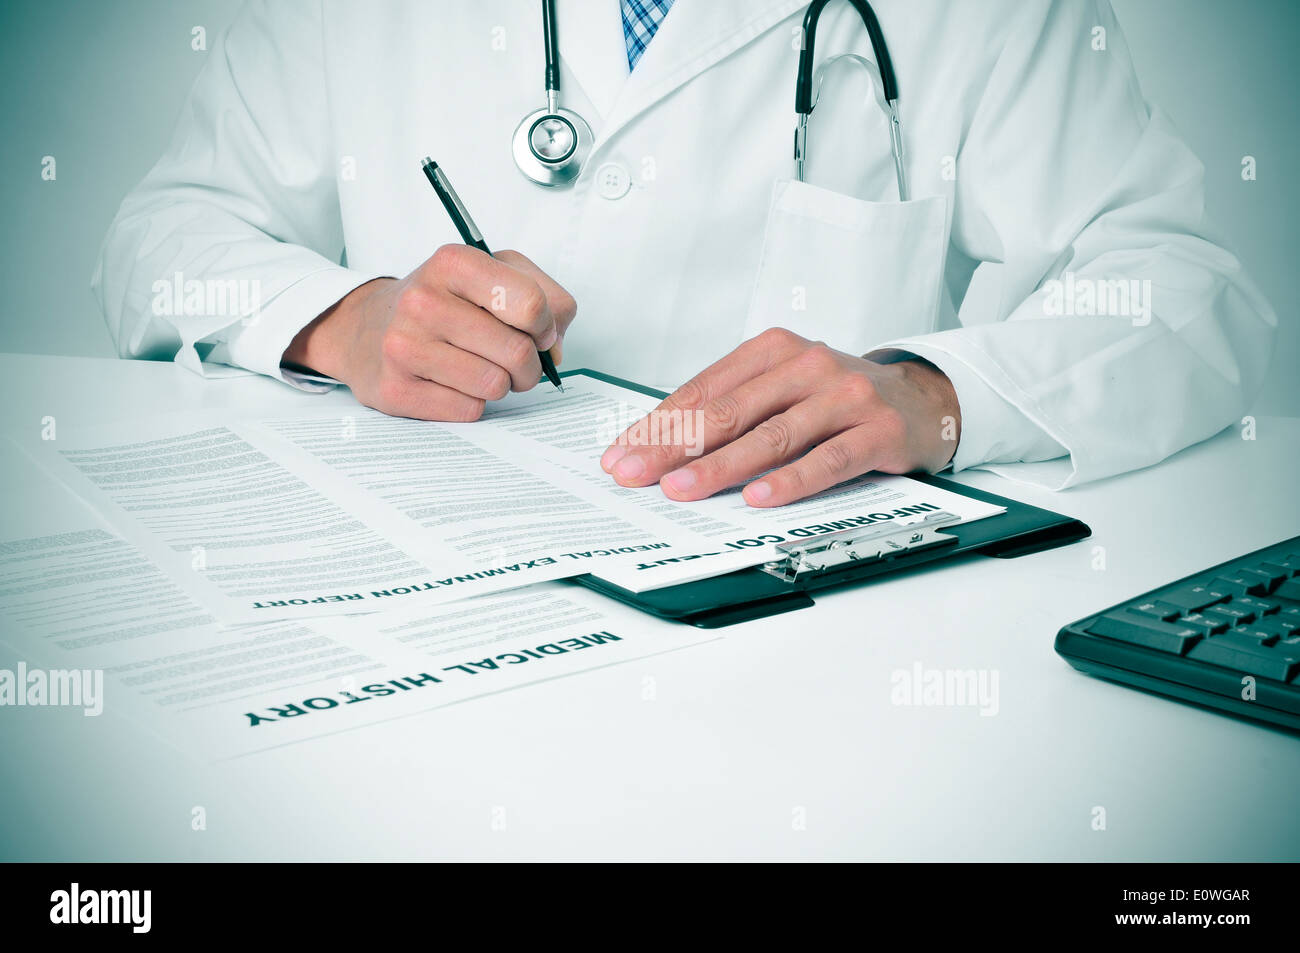 a doctor in his office checking out some documents - Stock Image